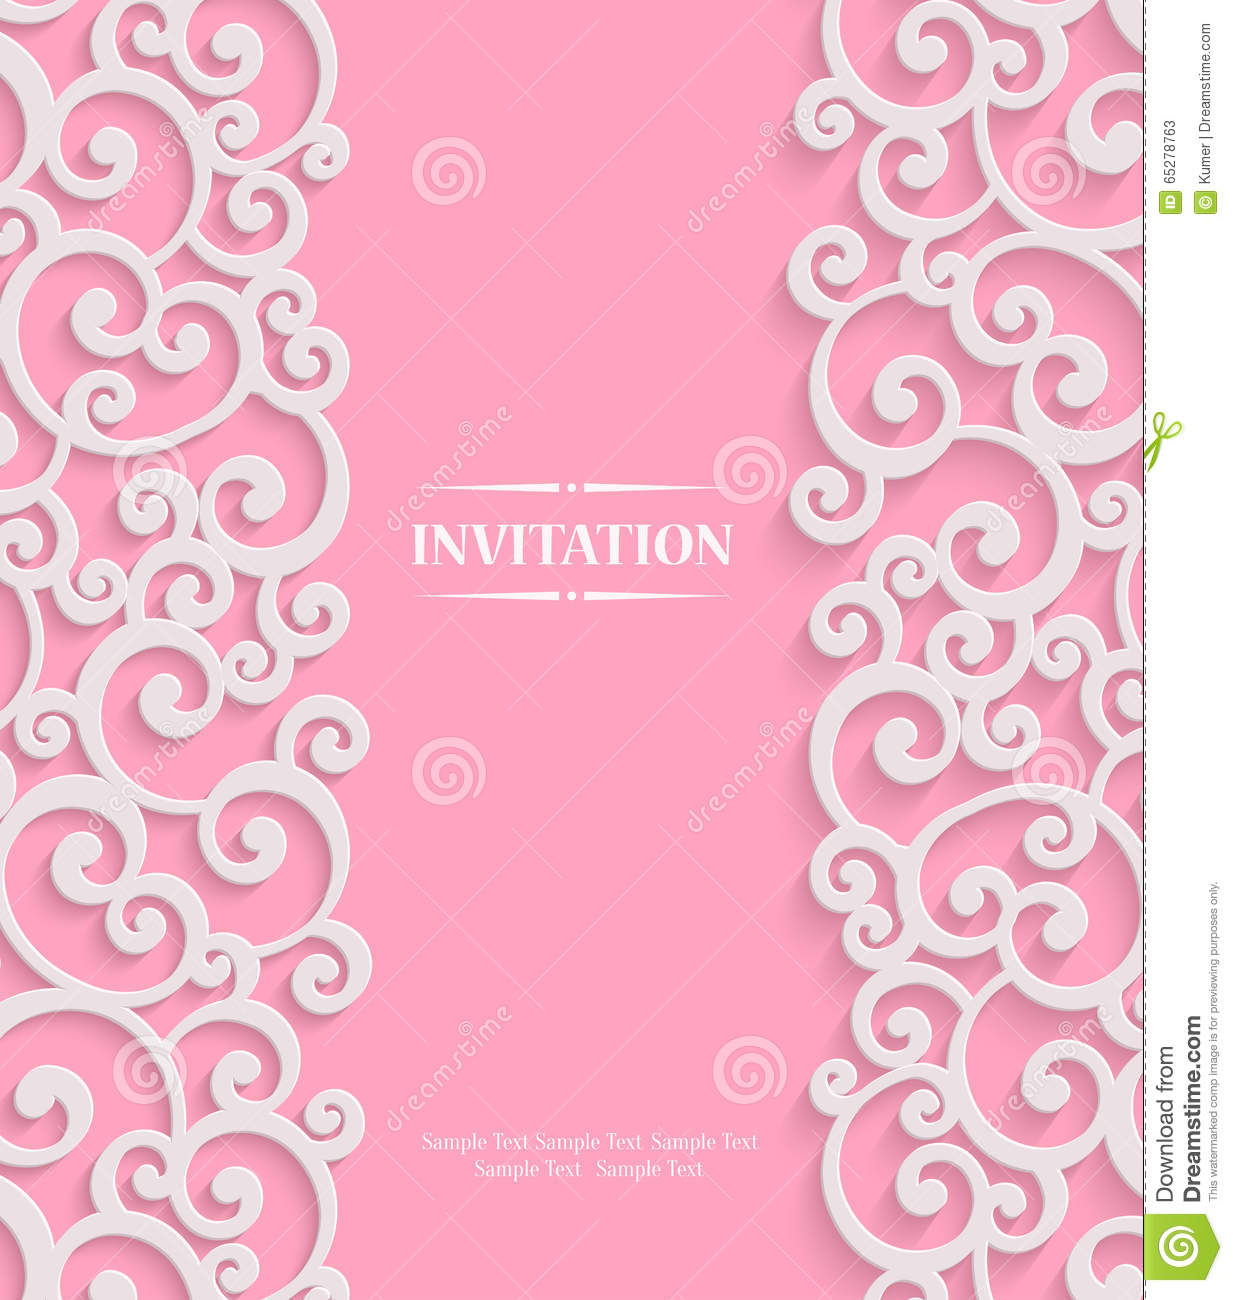 vector pink d vintage invitation card with floral stock vector, invitation samples